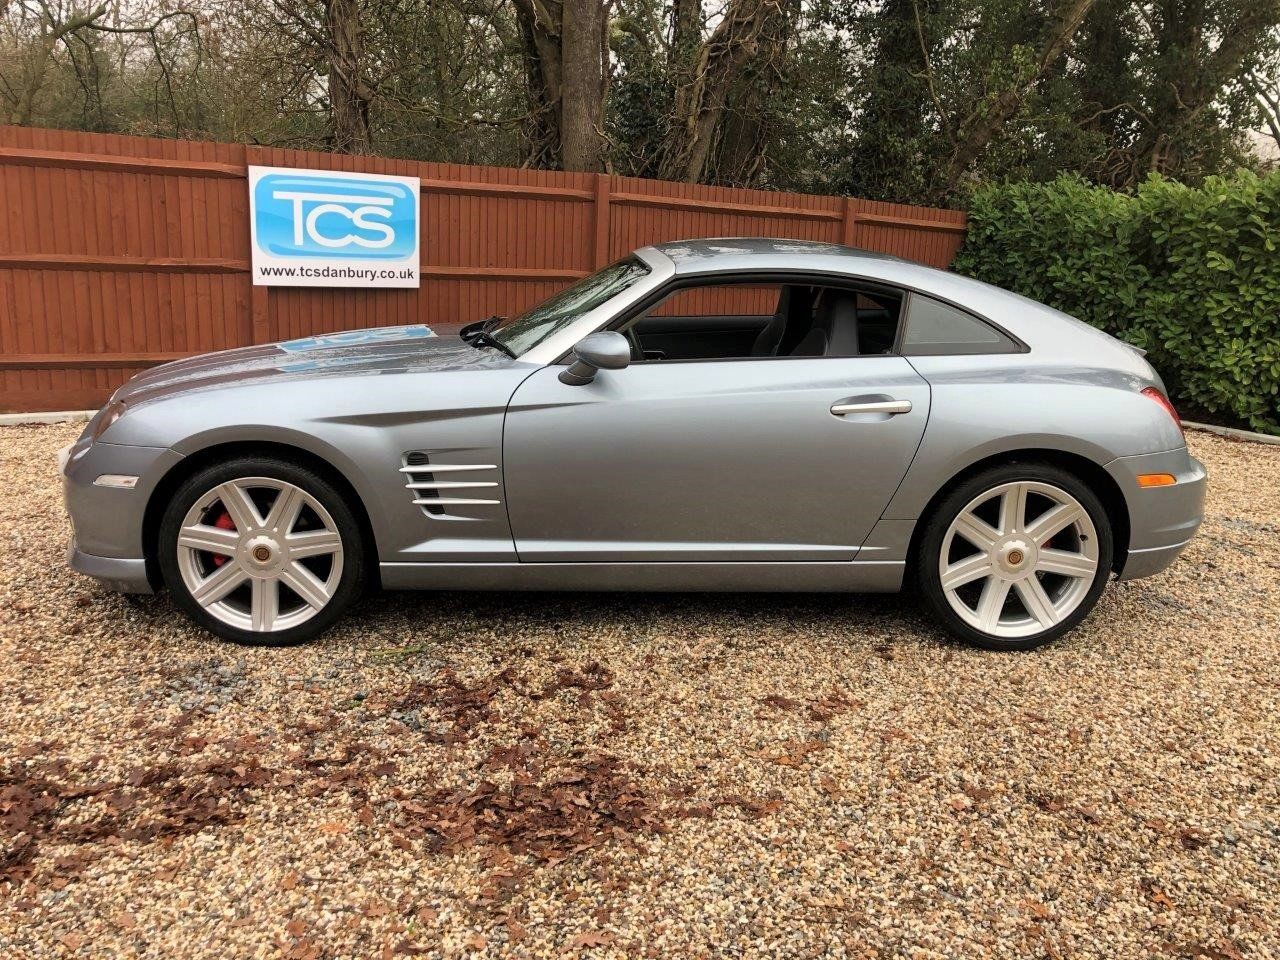 2003 Chrysler Crossfire 3.2i V6 Coupe 5-Speed Automatic SOLD (picture 4 of 12)